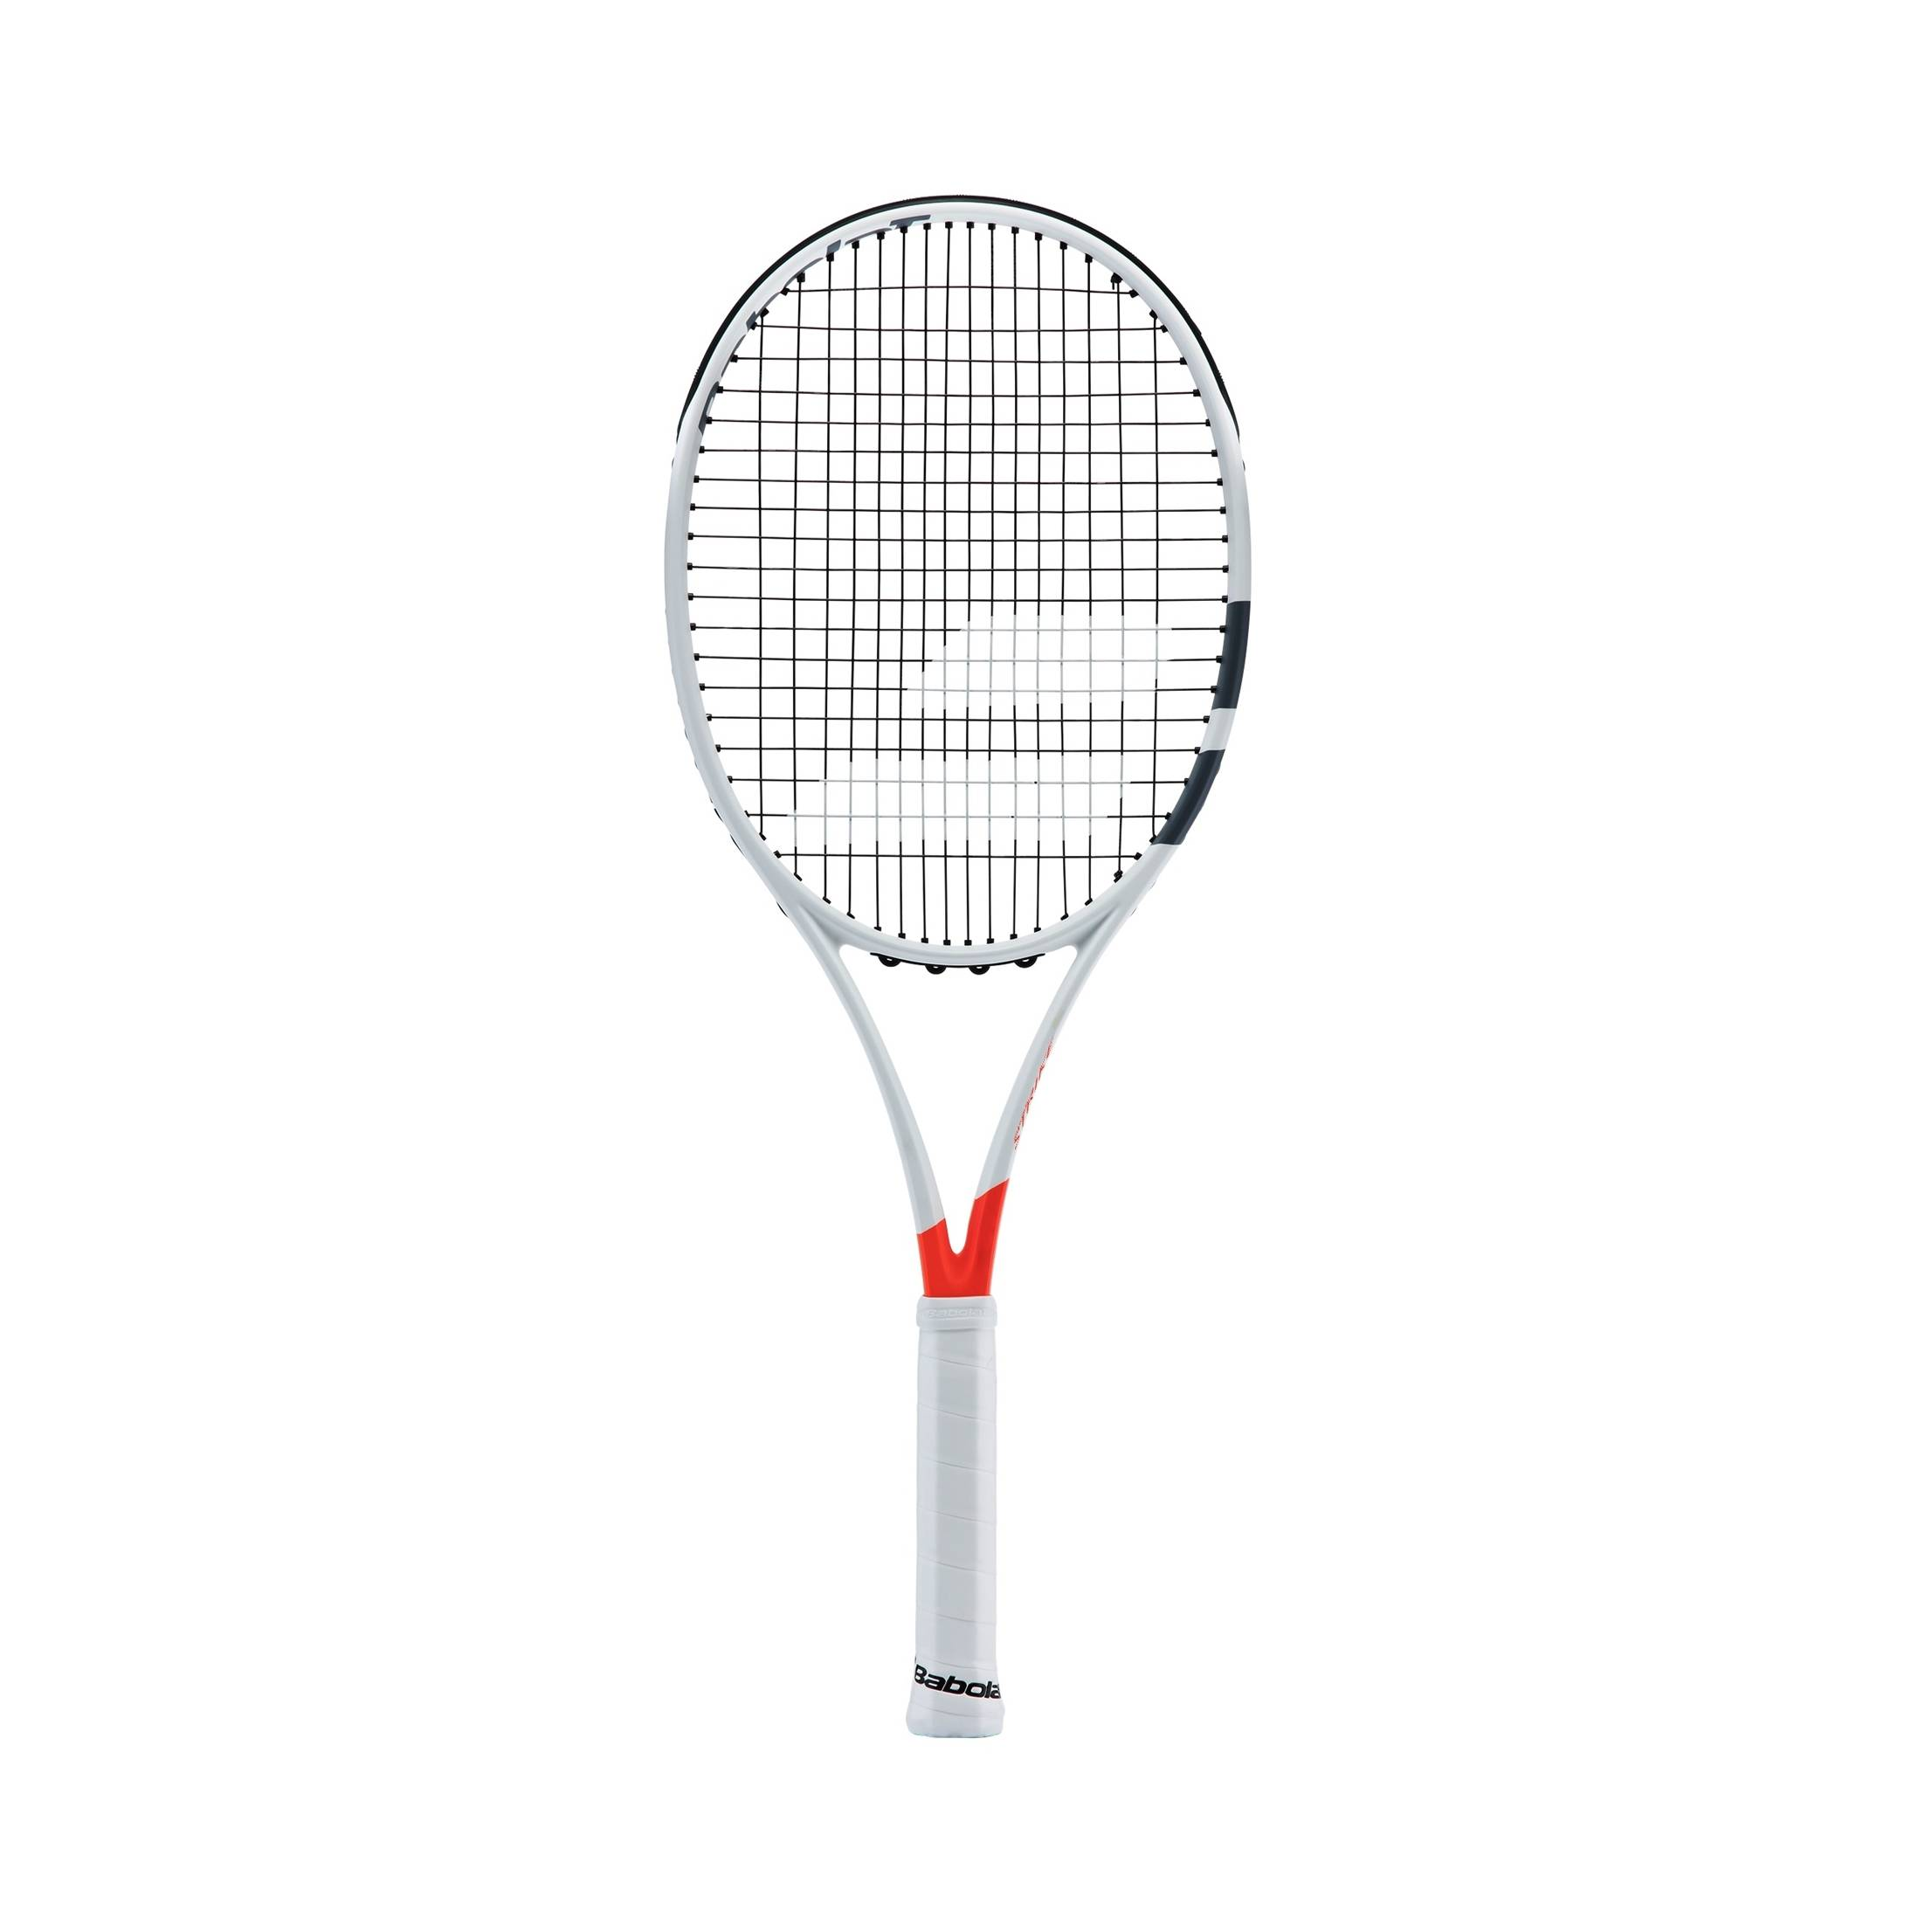 Babolat Pure Strike 16x19 (Project One7) 4 (4 1/2)